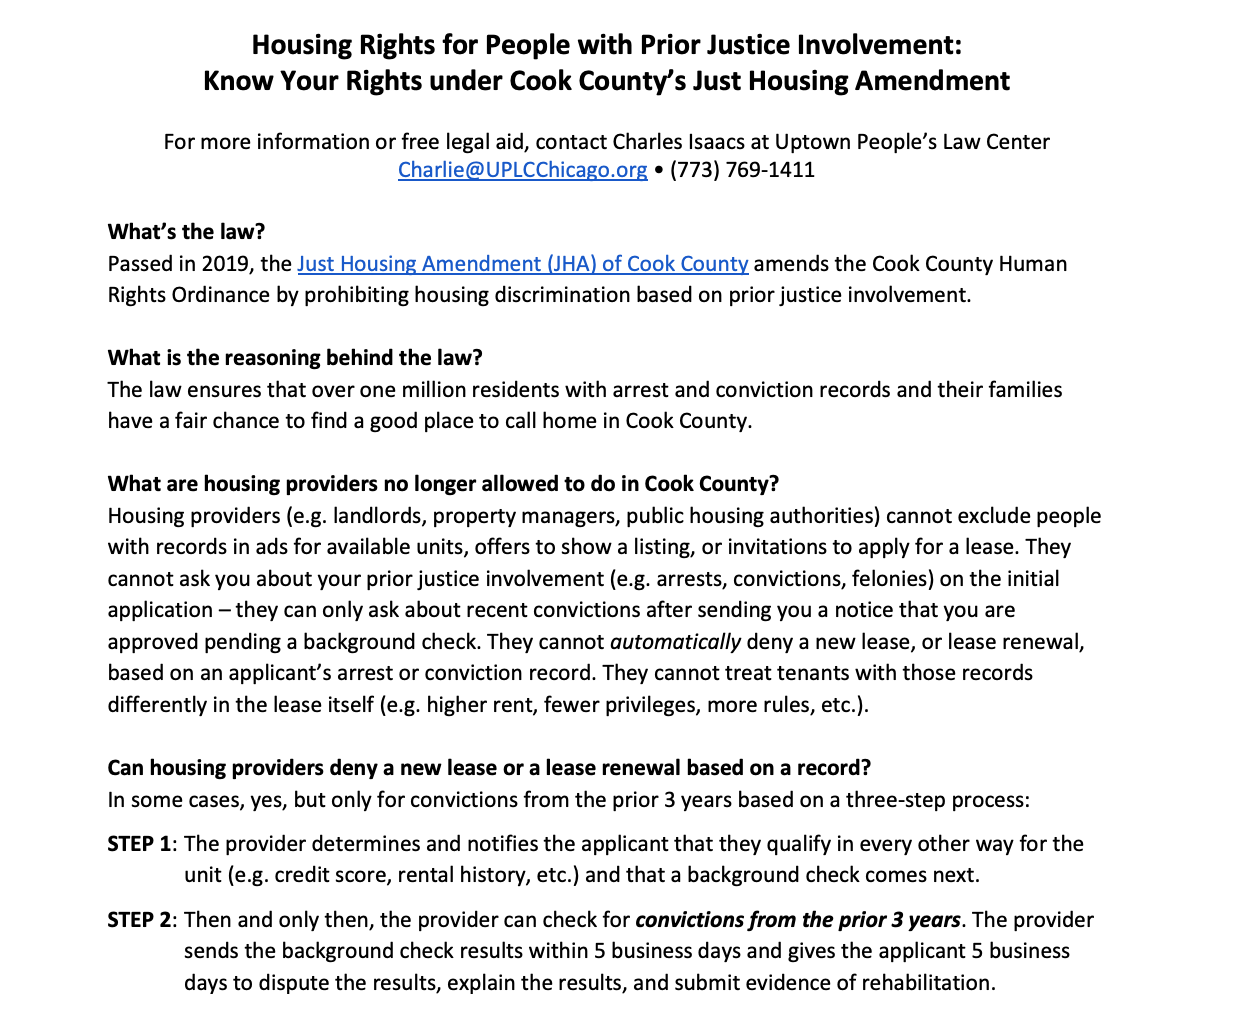 UPLC Guide to the Just Housing Amendment